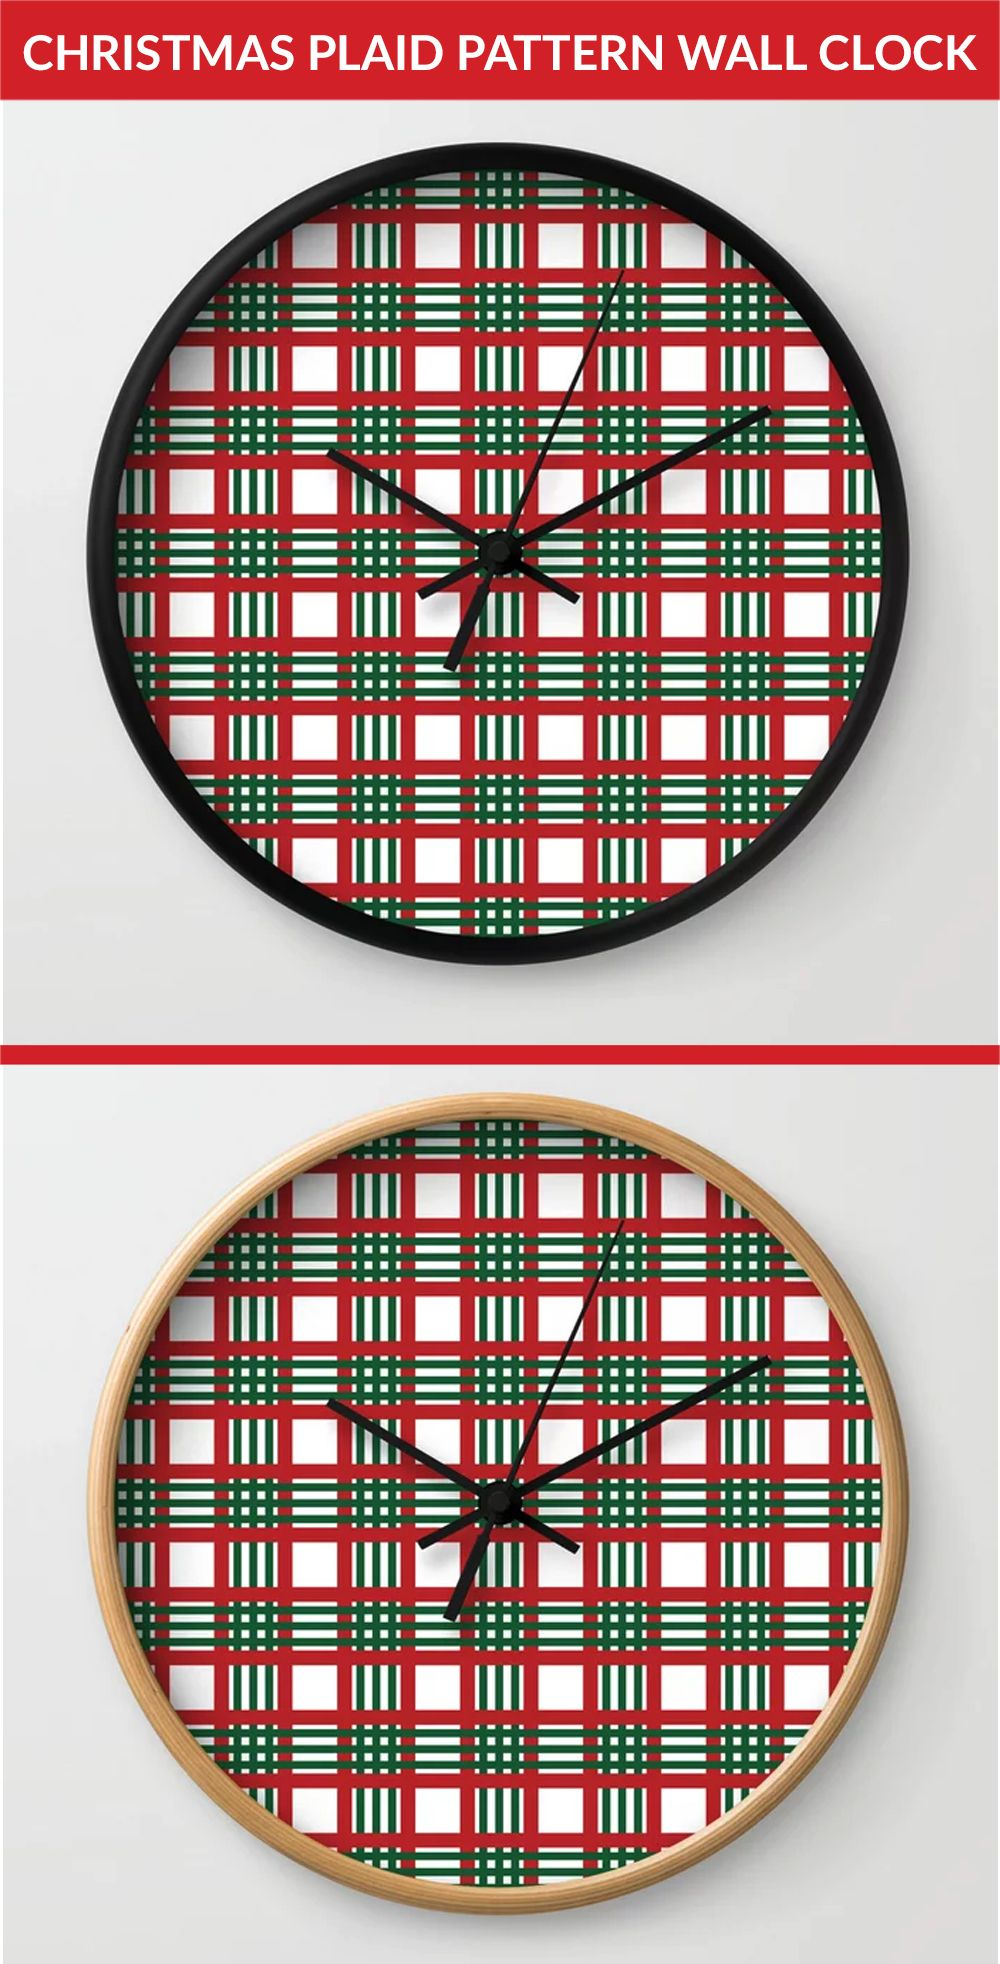 Looking for a unique wall clock? then get this Christmas plaid pattern Wall Clock. Get yours now. Click the link to buy now. #wallclock #wallclocks #clocks #Christmas #Christmasdecor #Christmasdecorations #Christmasplaidpatterrn #plaidpattern #Christmasplaid #walldecor #walldecoration